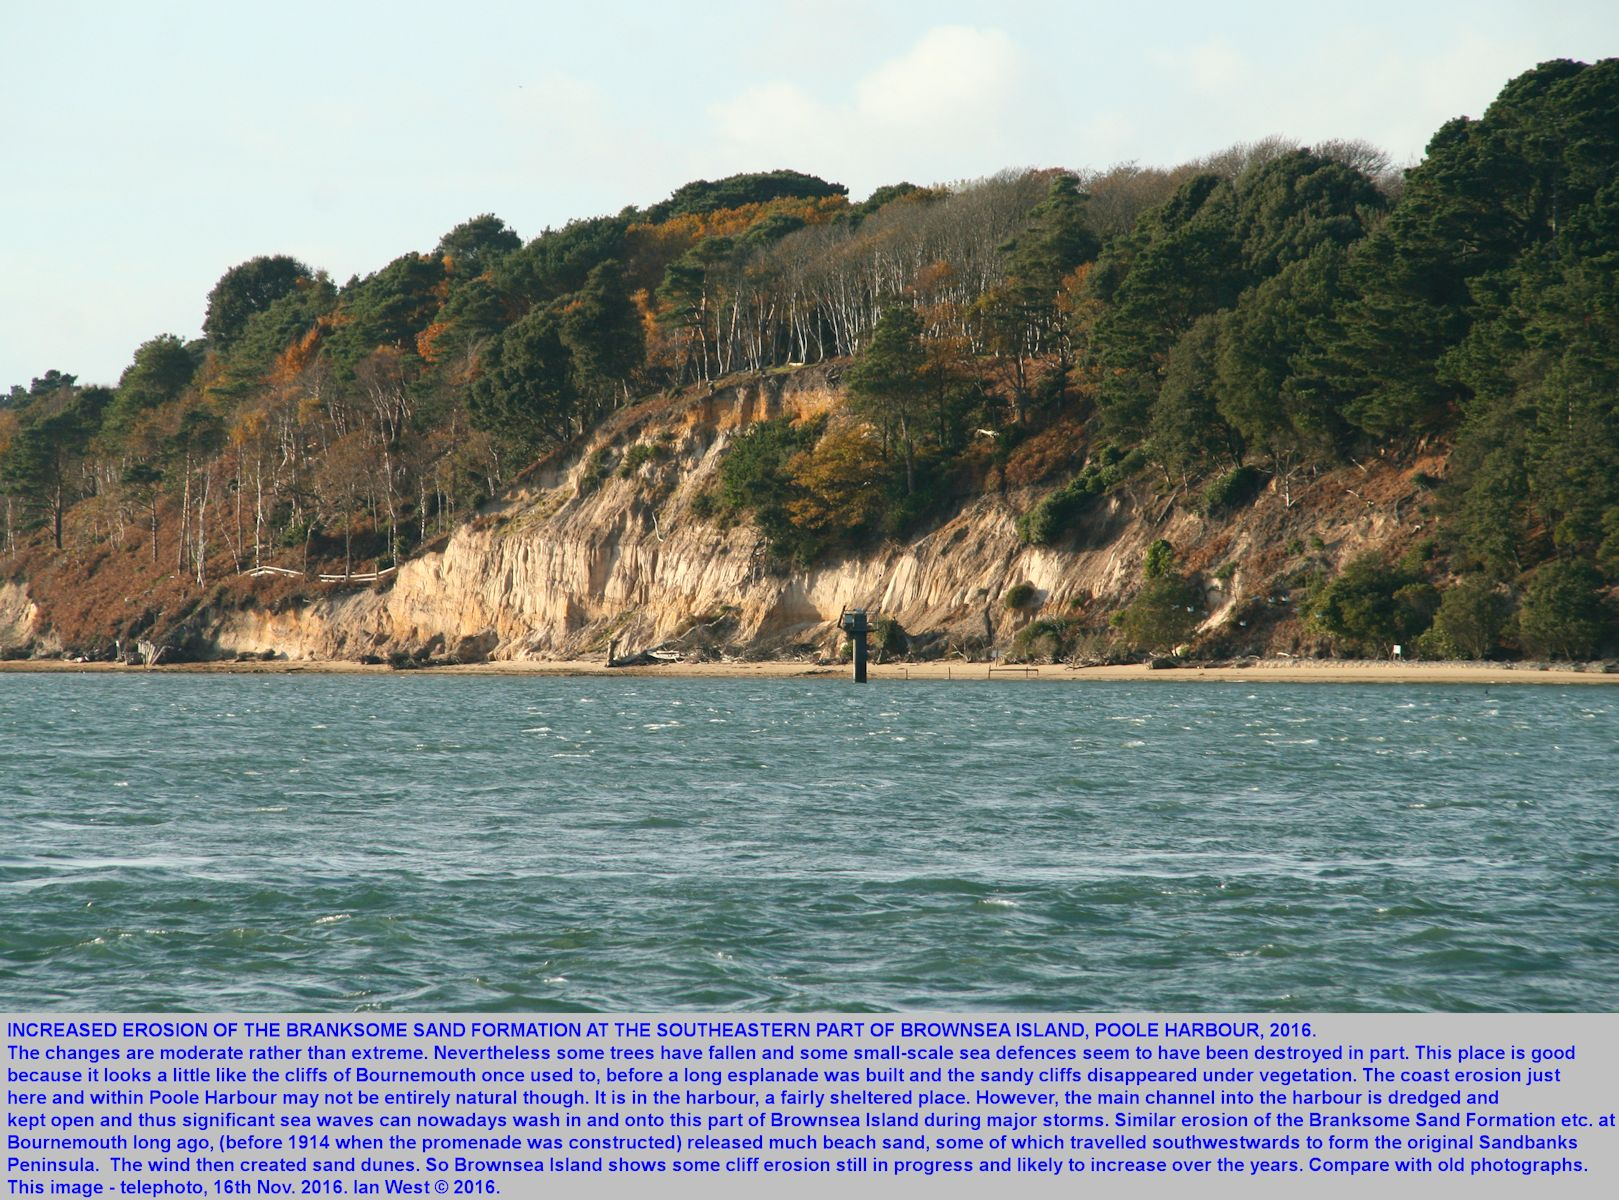 Erosion of the cliff of Branksome Sand Formation at the southeastern corner of Brownsea Island, Poole Harbour, Dorset, UK, as seen on the 16th November 2016